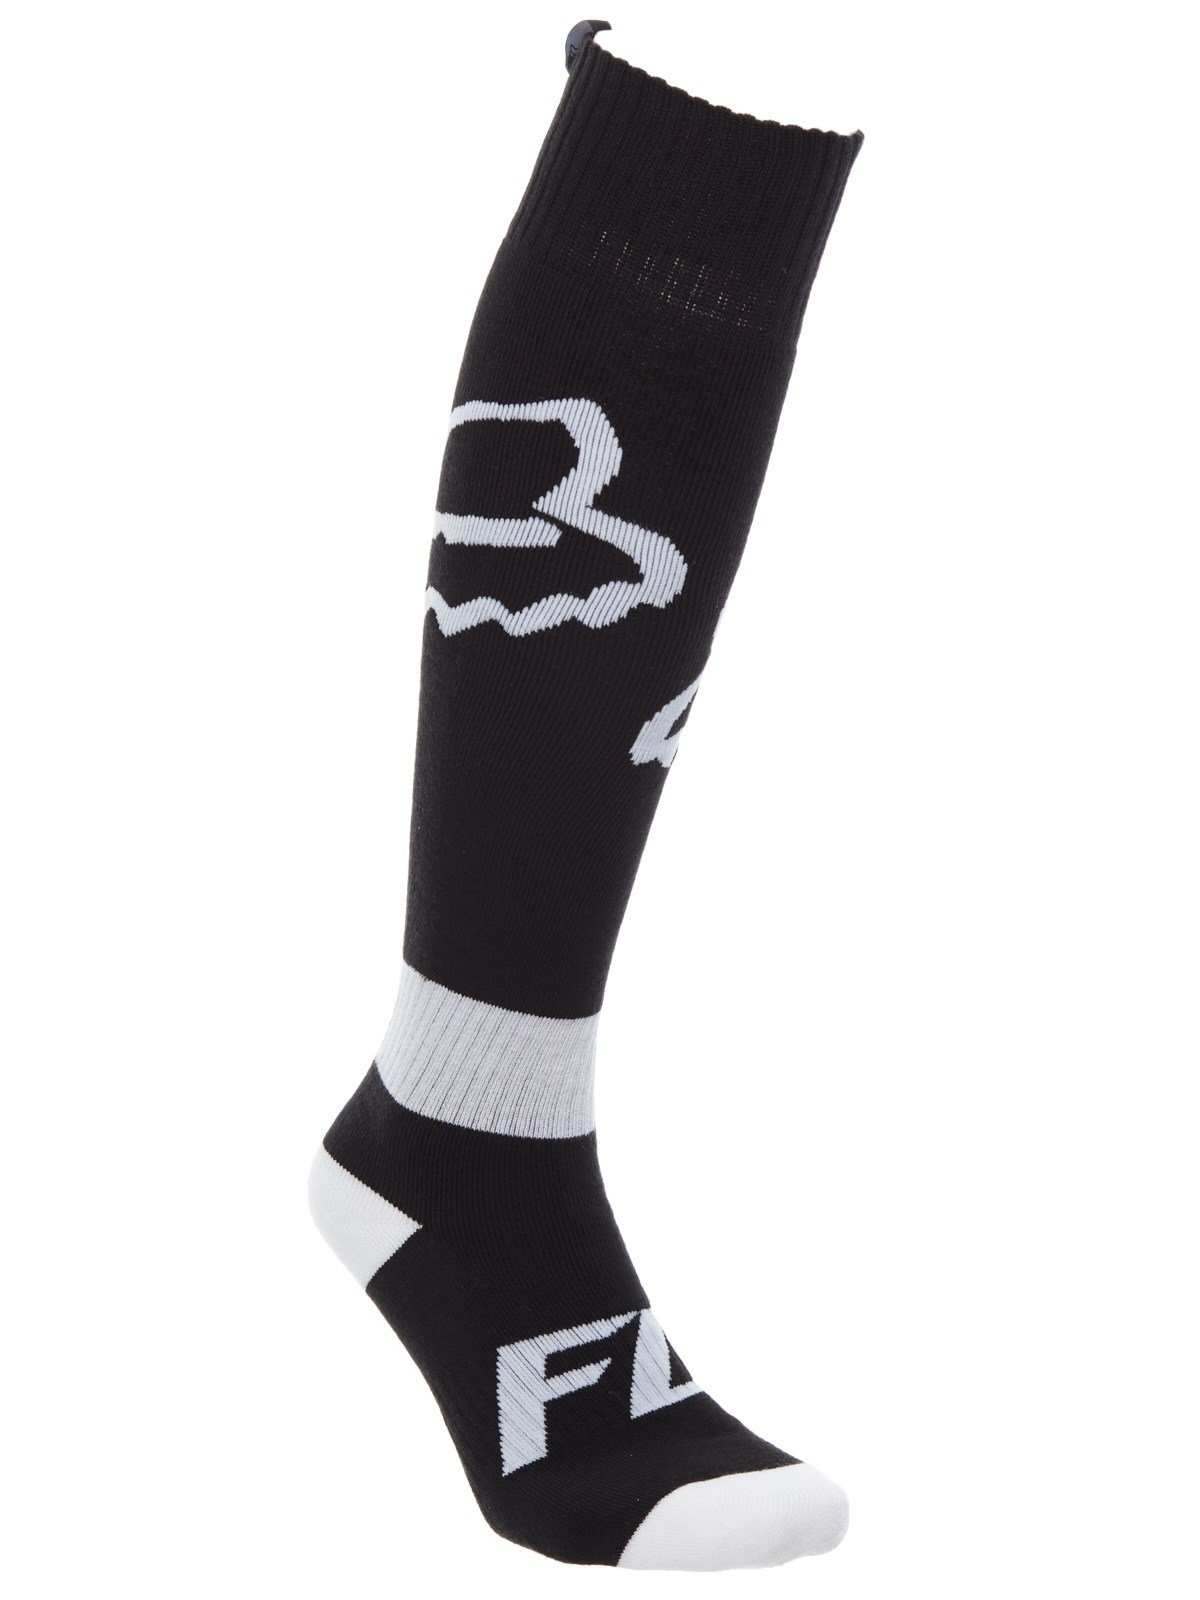 2018 Fox Racing FRI Thin Race Socks-Black-M